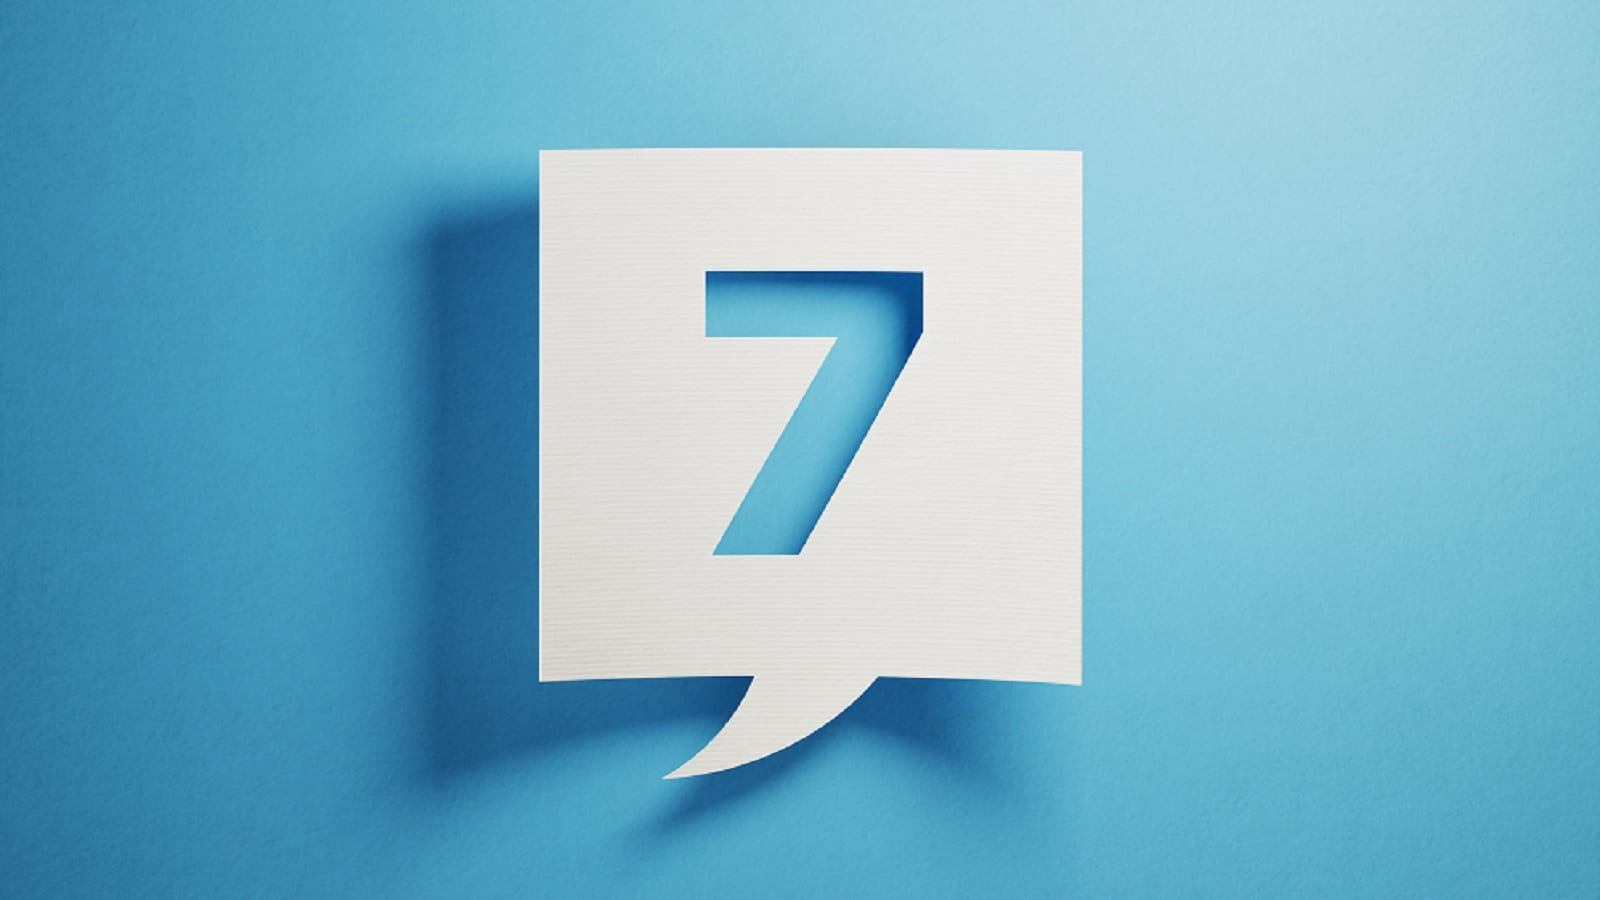 Animated Number 7 Stock Photo